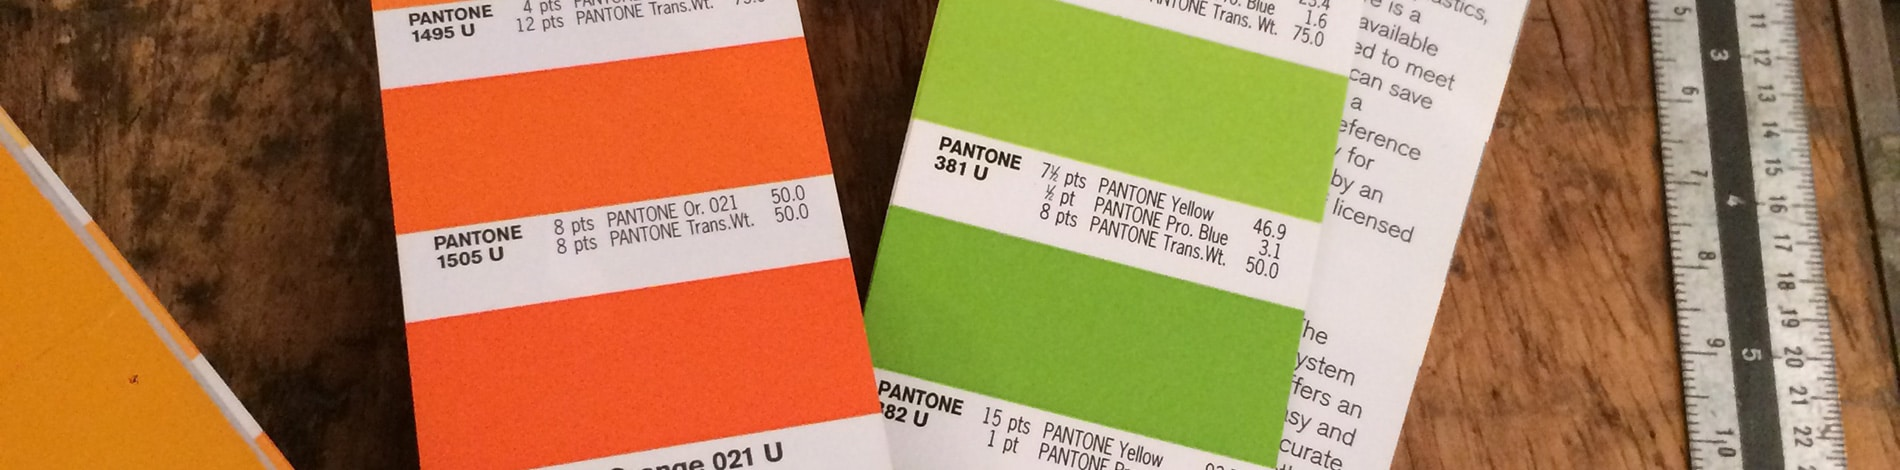 Detail Pantone-Fächer